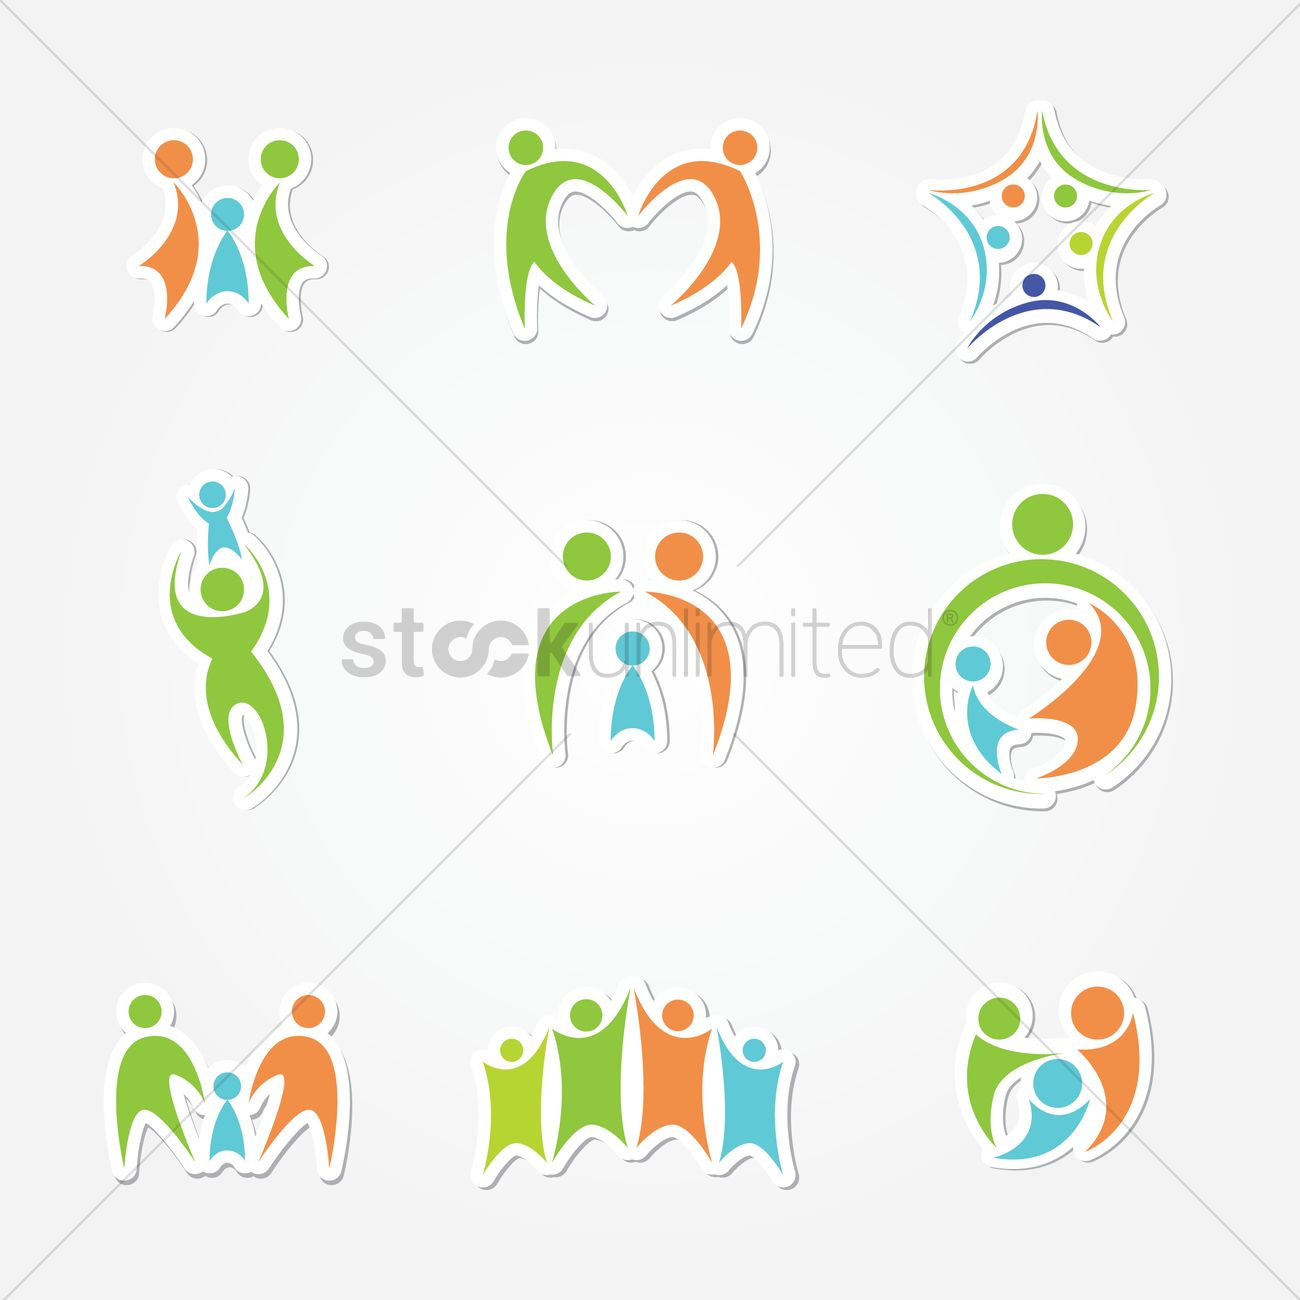 Family logo Vector Image - 1243731 | StockUnlimited